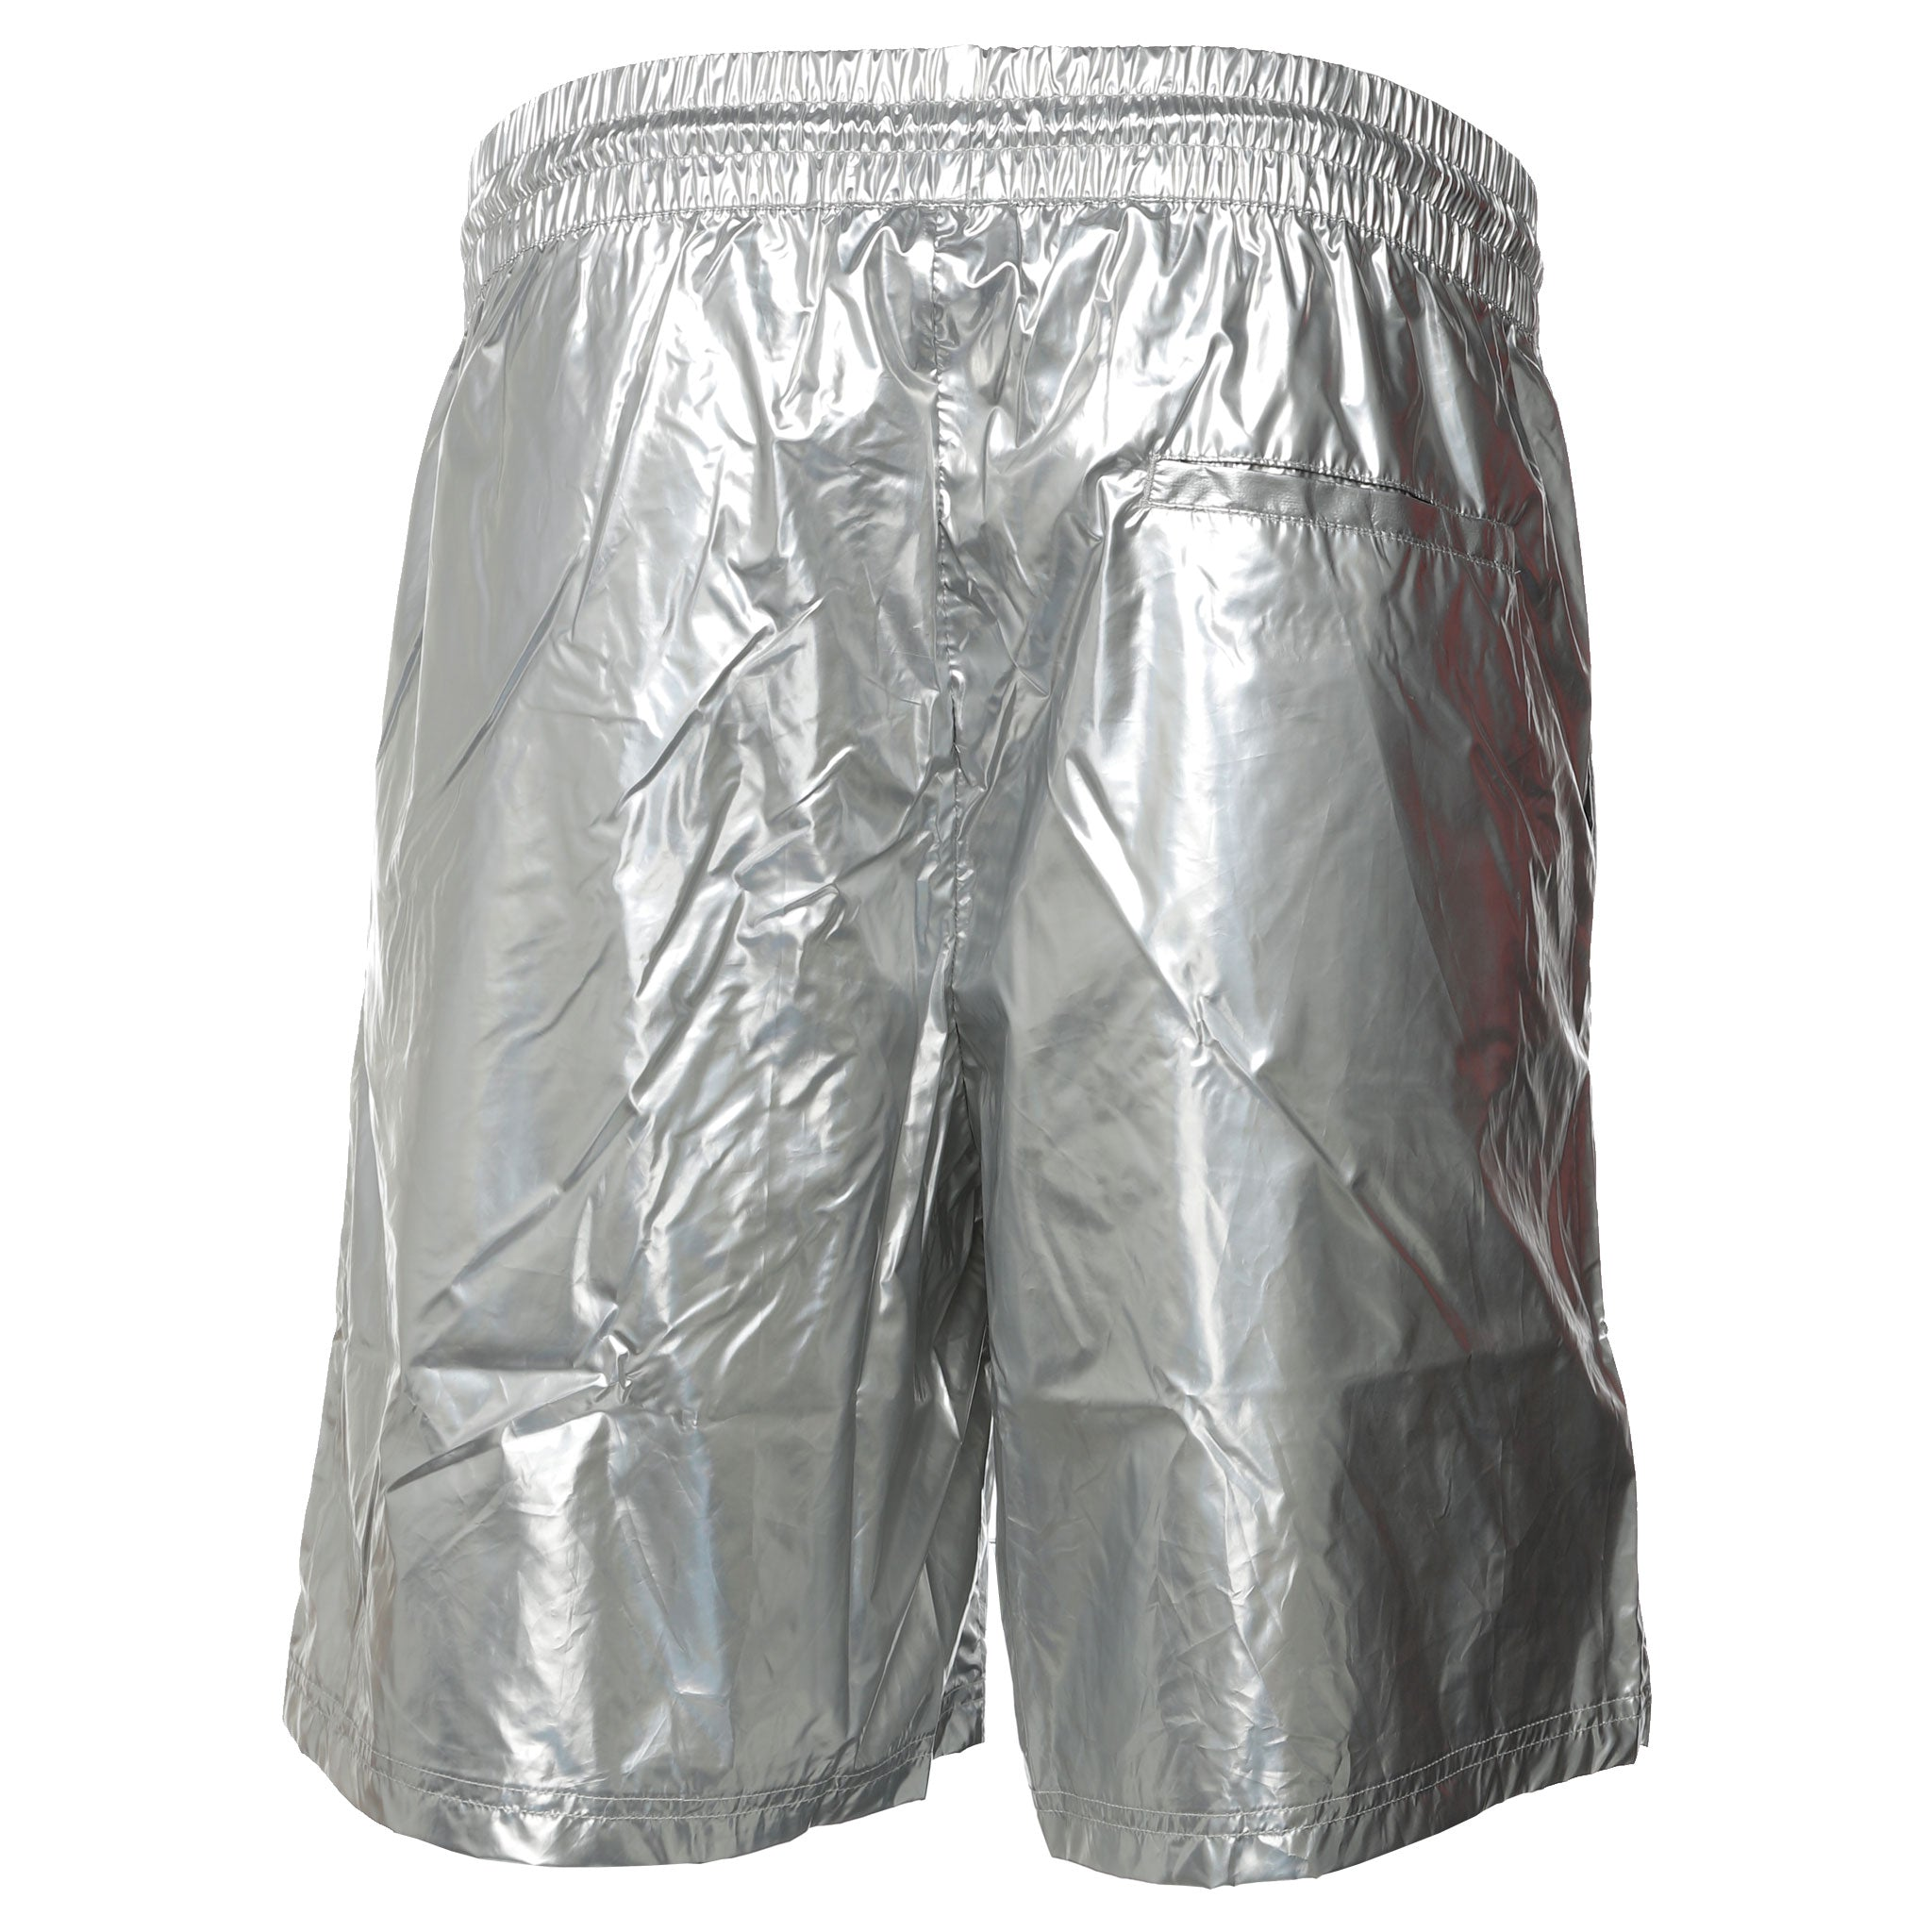 Pleasures - Silver Liquid Metallic Shorts